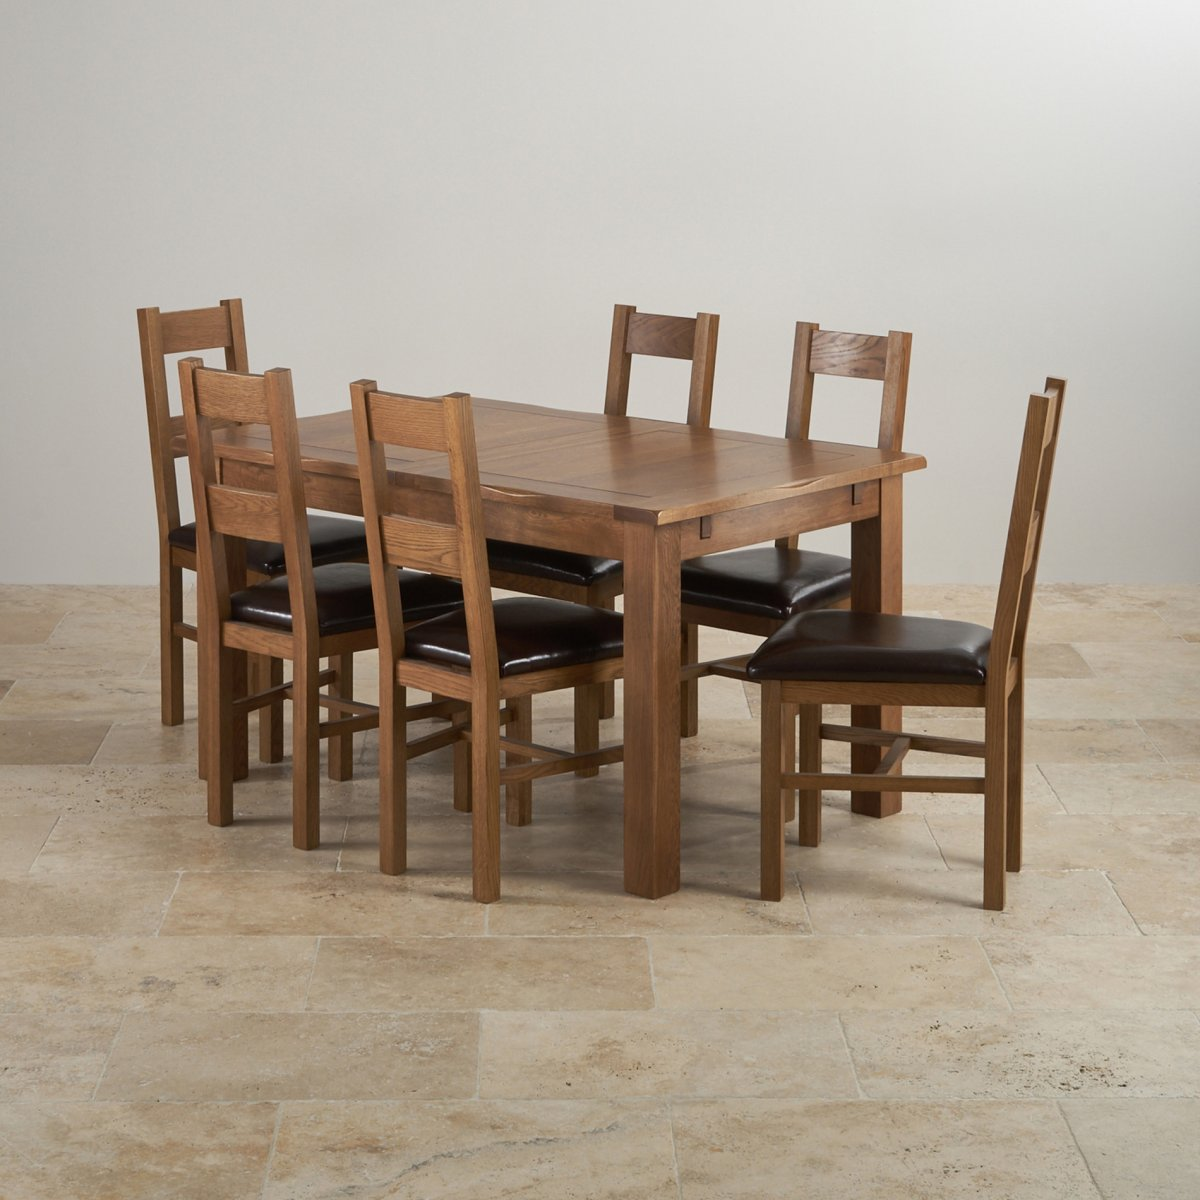 Dining Tables Rustic: Rushmere Extending Dining Table In Rustic Oak + 6 Leather